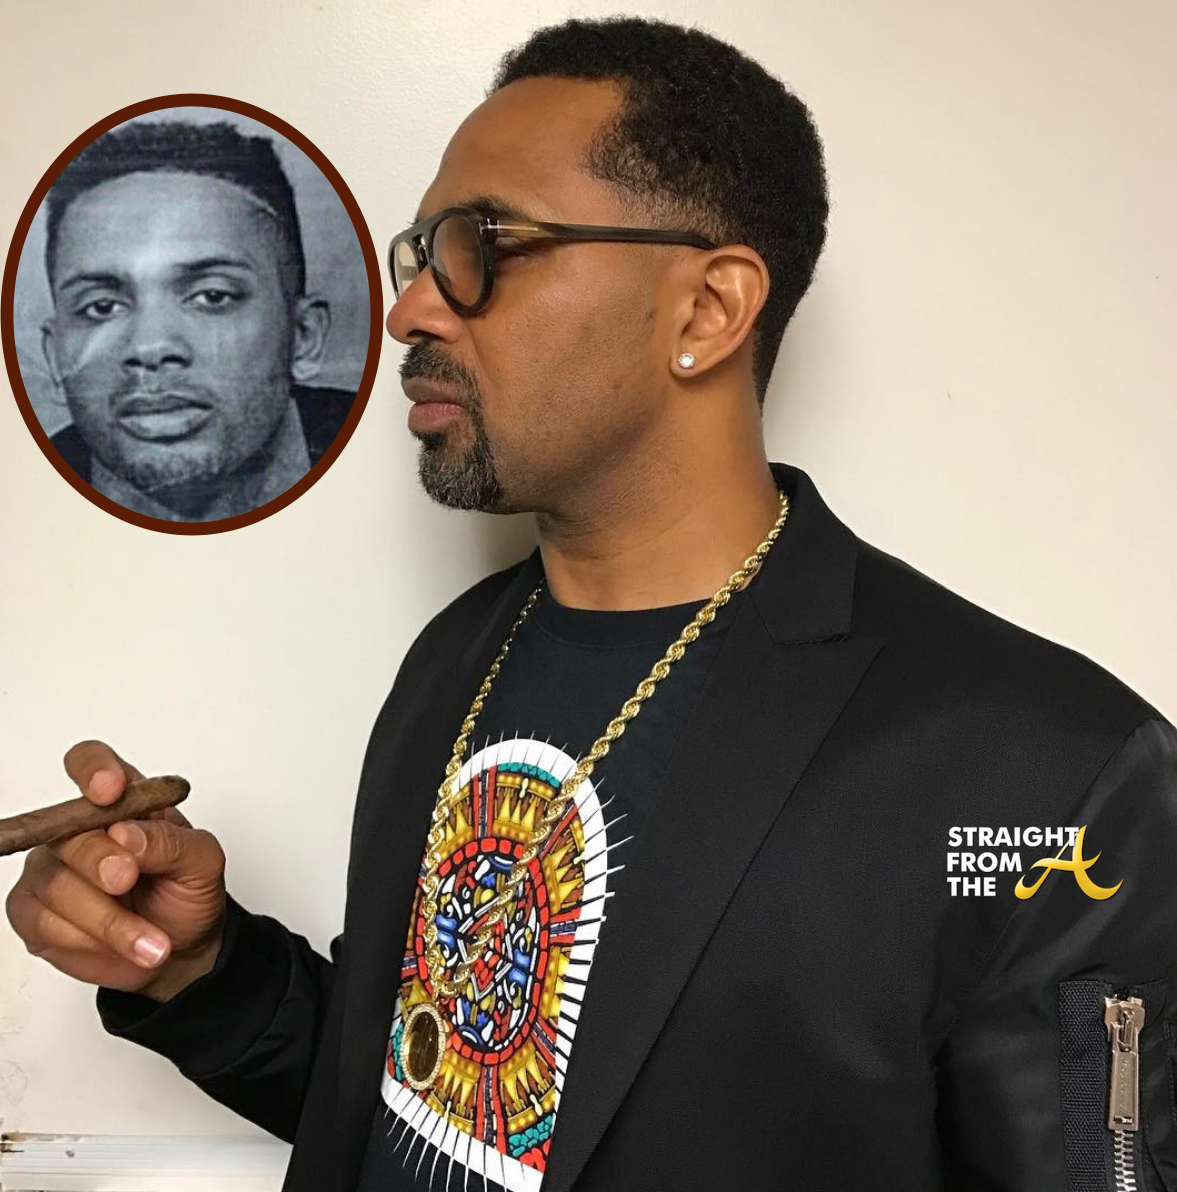 epps divorced singles Comedian mike epps is officially divorced and it is mike epps is officially a single a judge just signed off on his divorce from mechelle mccain epps.